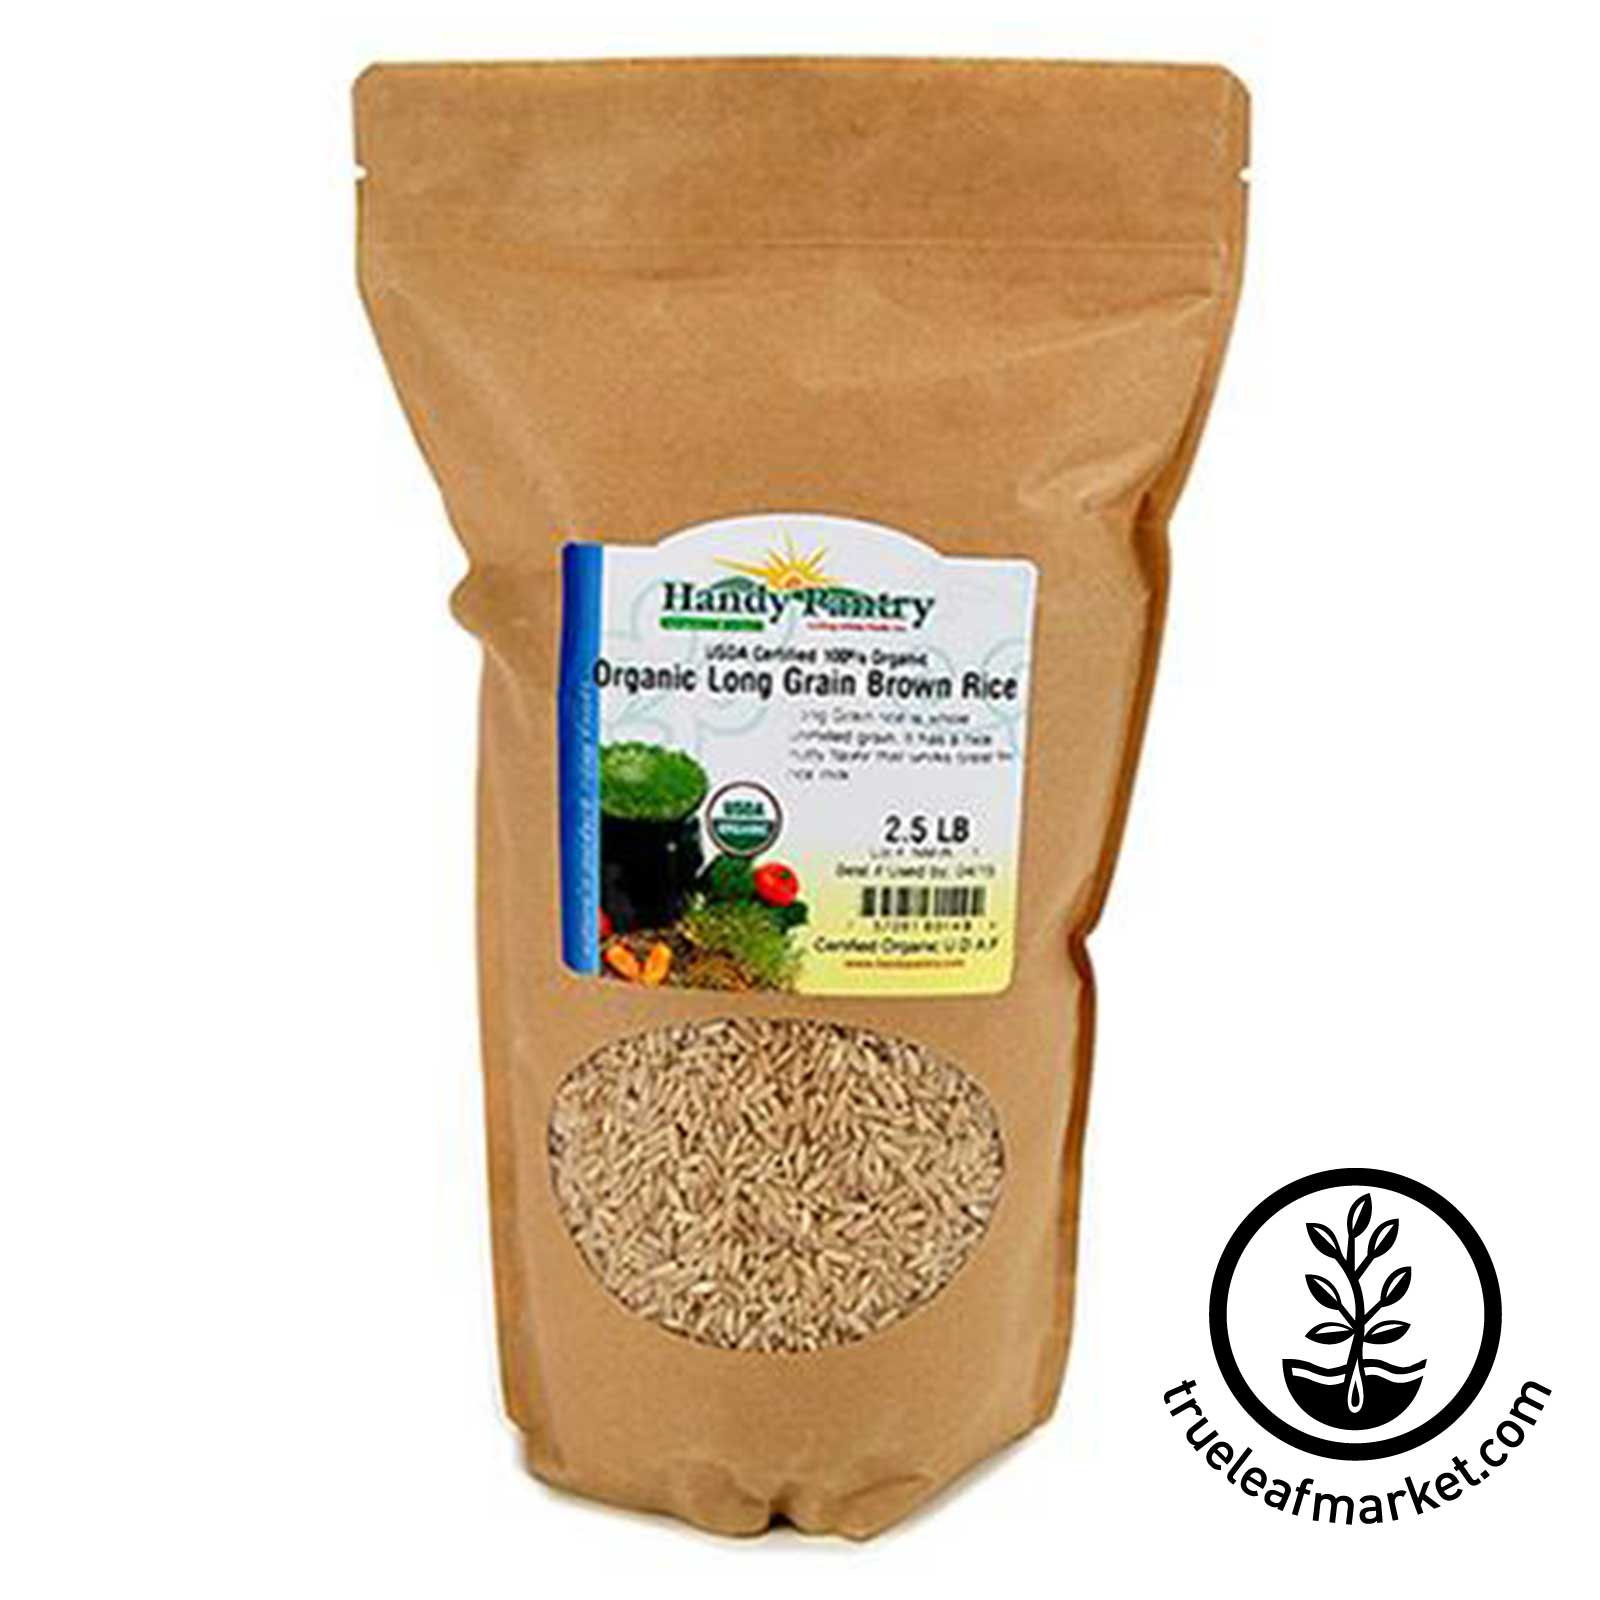 Organic Long Grain Brown Rice - 2.5 Lbs organic rice, long grain rice, organic brown rice